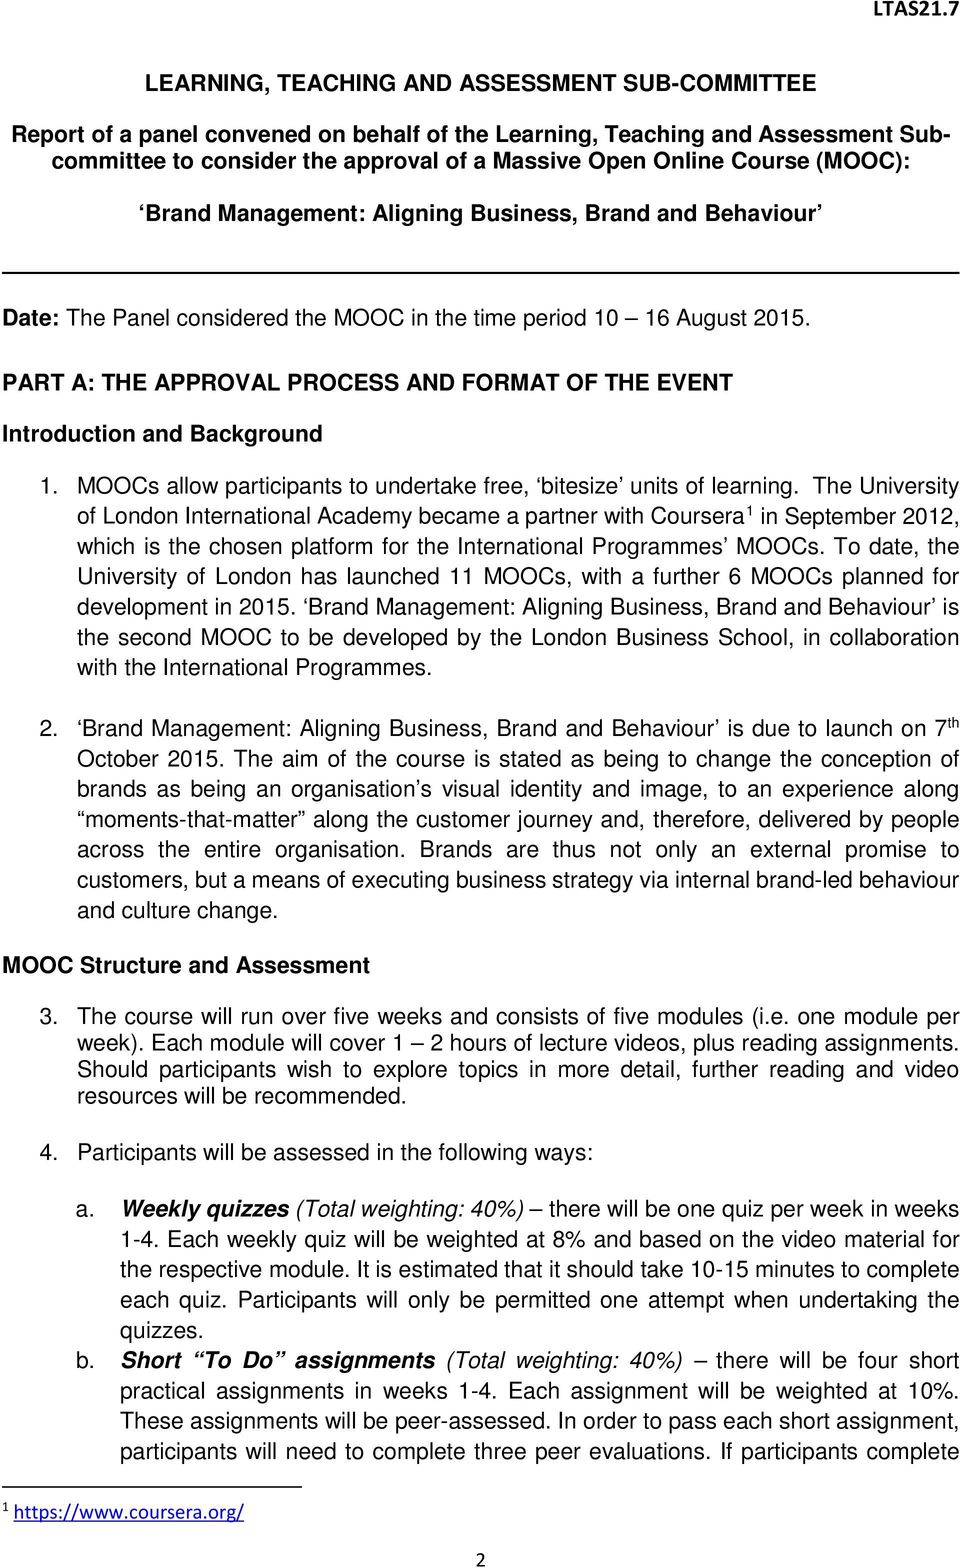 PART A: THE APPROVAL PROCESS AND FORMAT OF THE EVENT Introduction and Background 1. MOOCs allow participants to undertake free, bitesize units of learning.